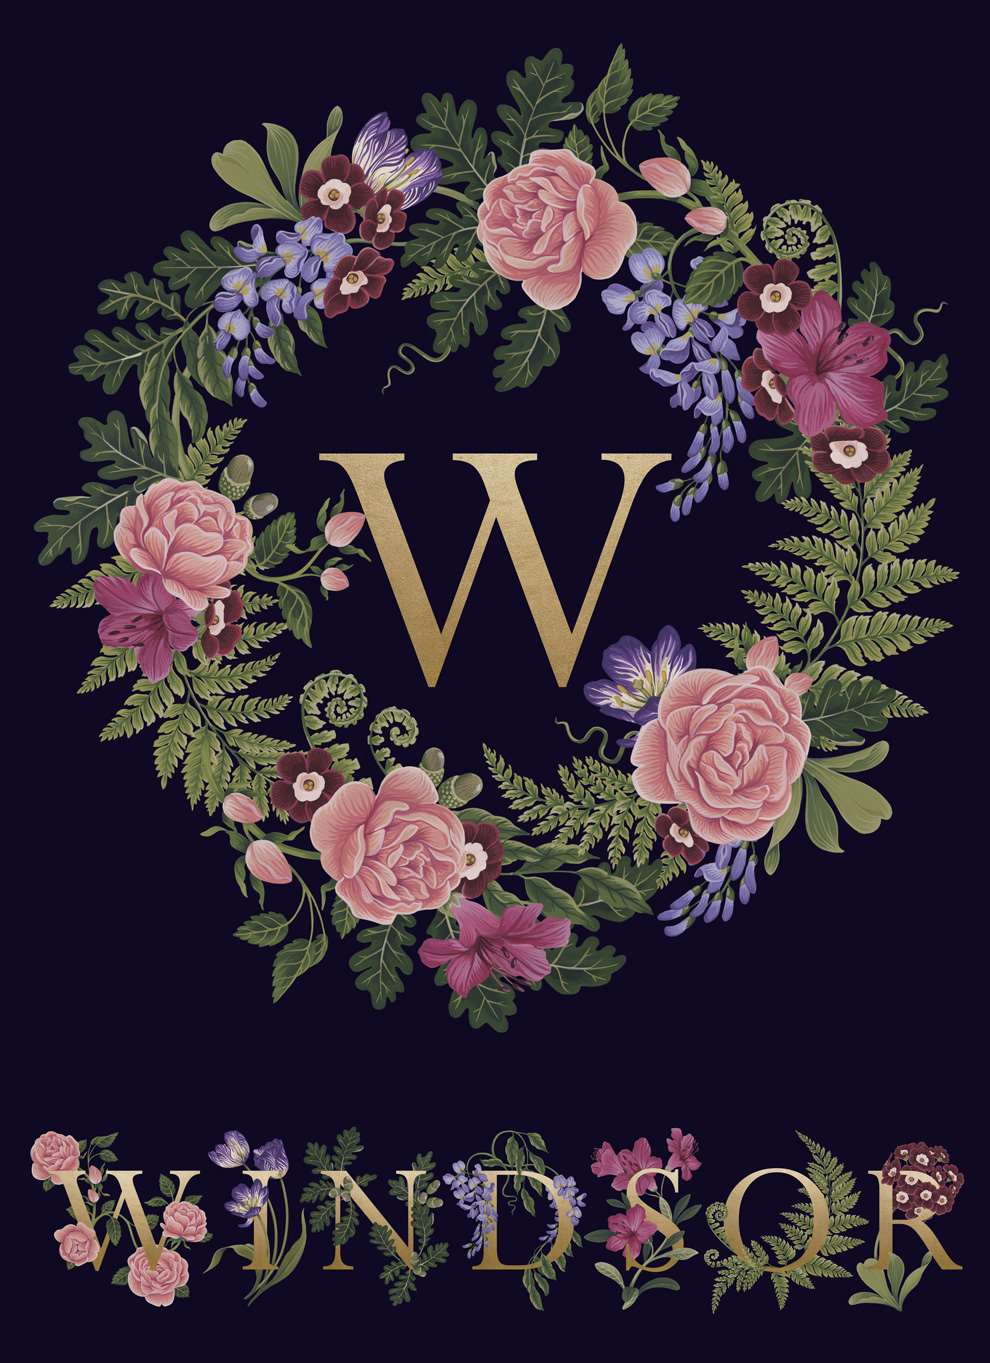 Charlotte Day, Gold lettering spelling WINDSOR with decorative botanical elements on a dark purple background